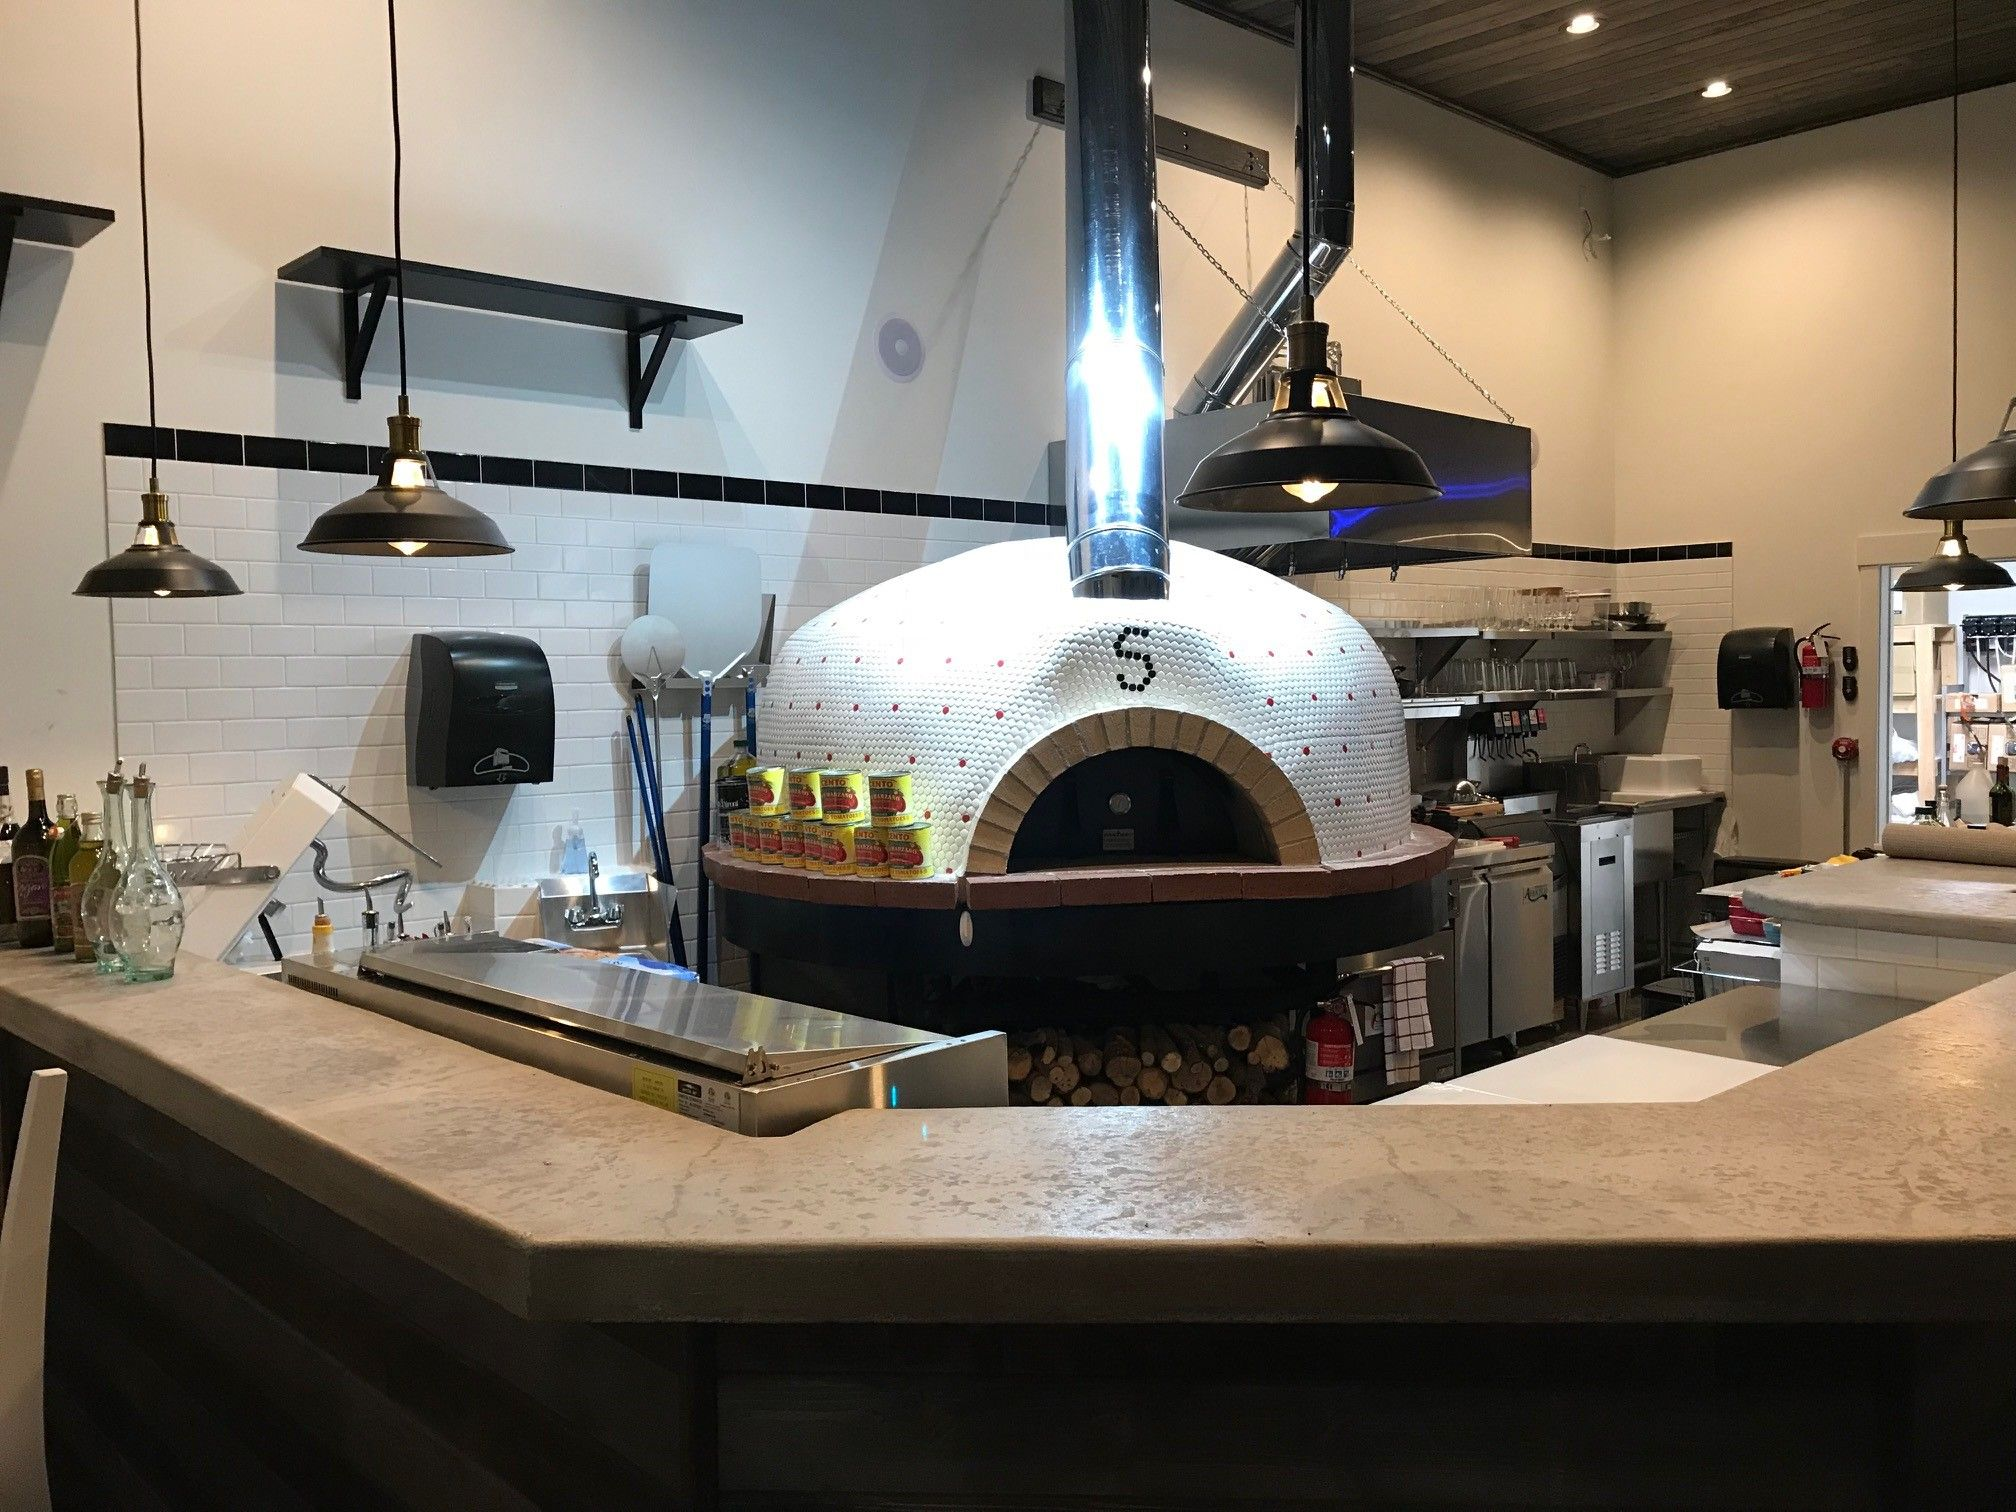 Modena Pizza Oven | Oven Commercial Installations in 2019 ...